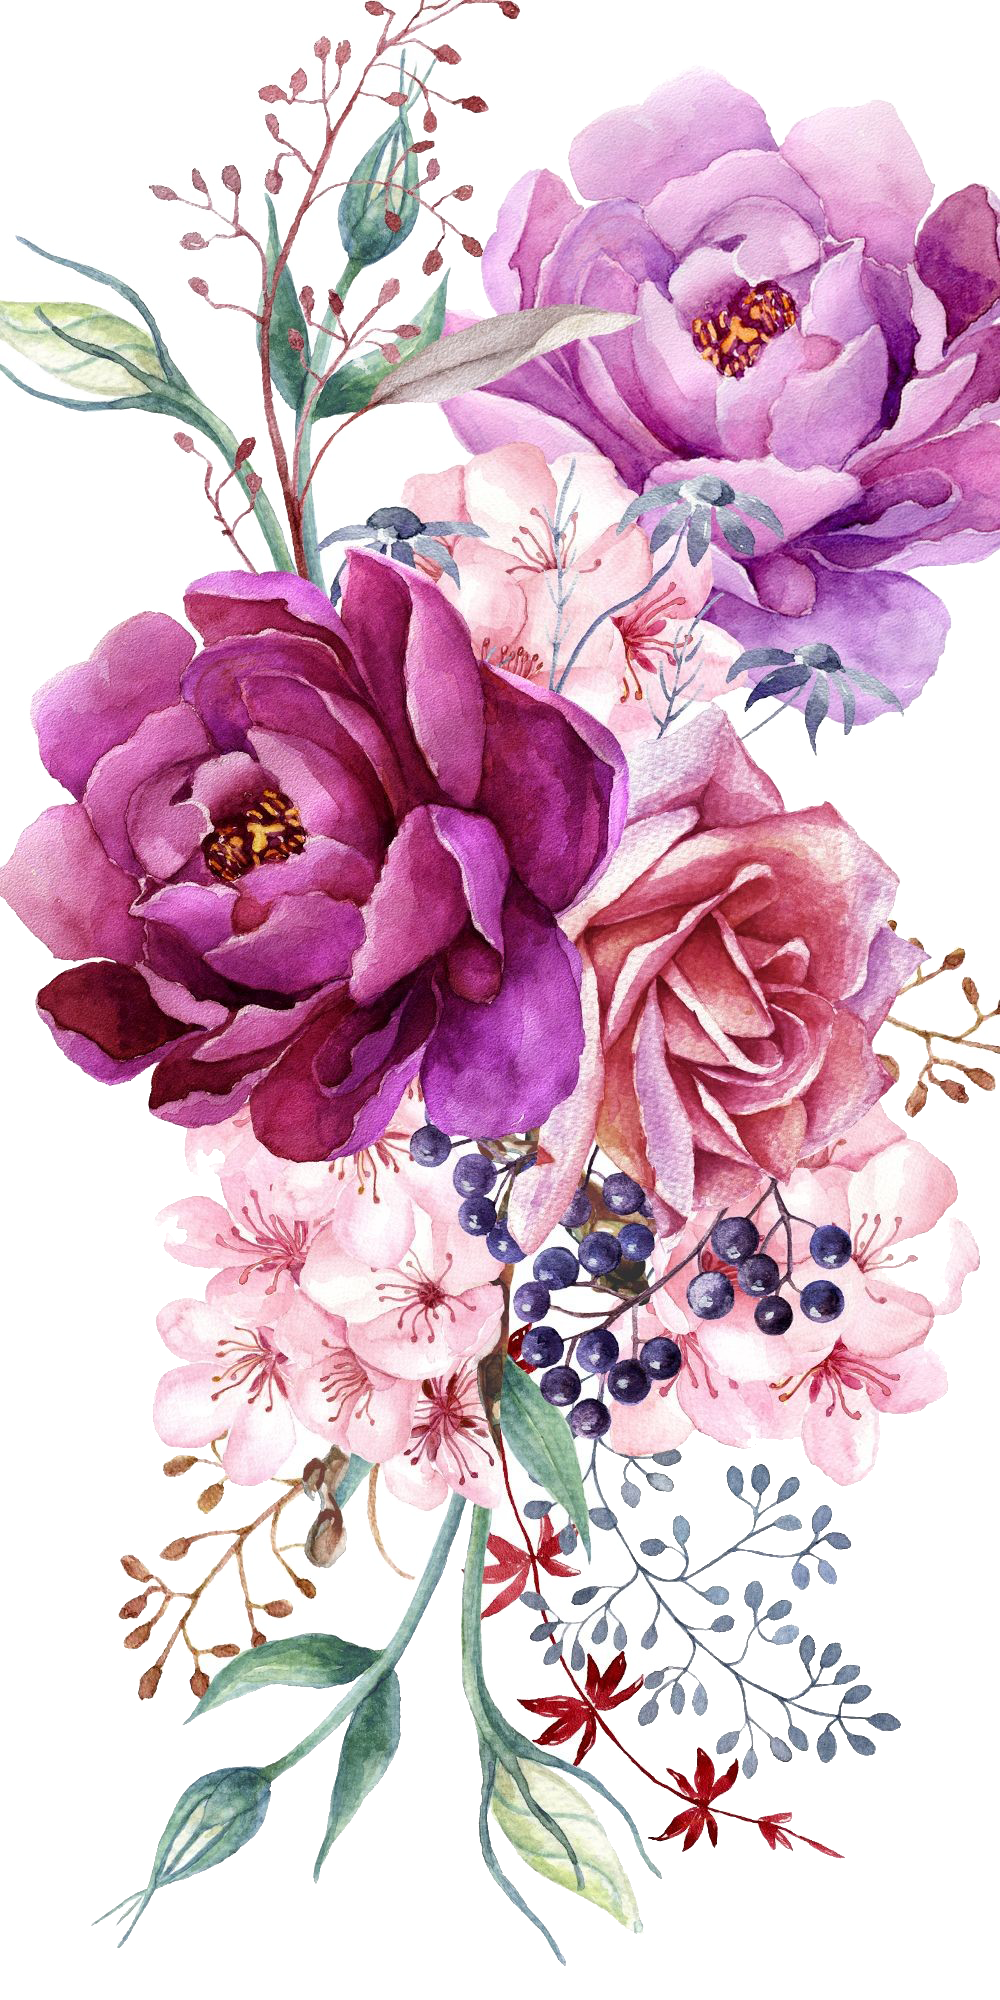 Pin by Kathy Wiens on Flowers to paint Watercolor